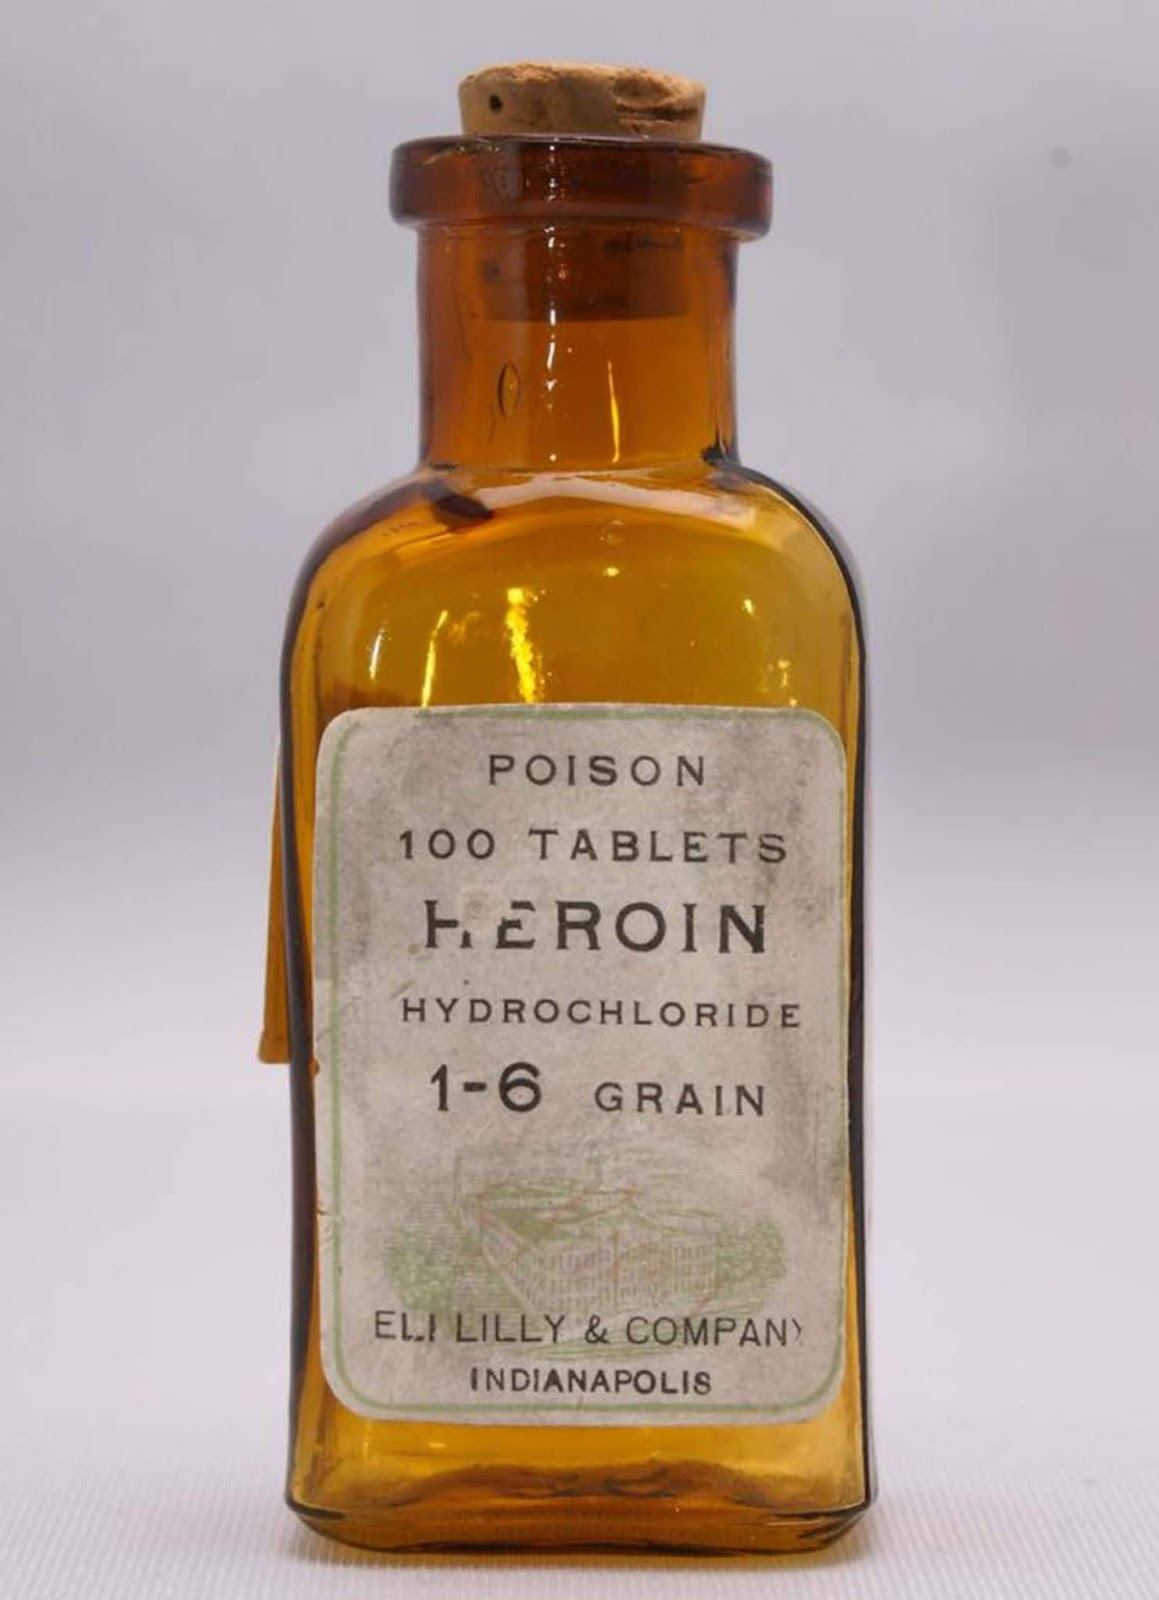 Heroin Hydrochloride. People back then really liked their heroin.